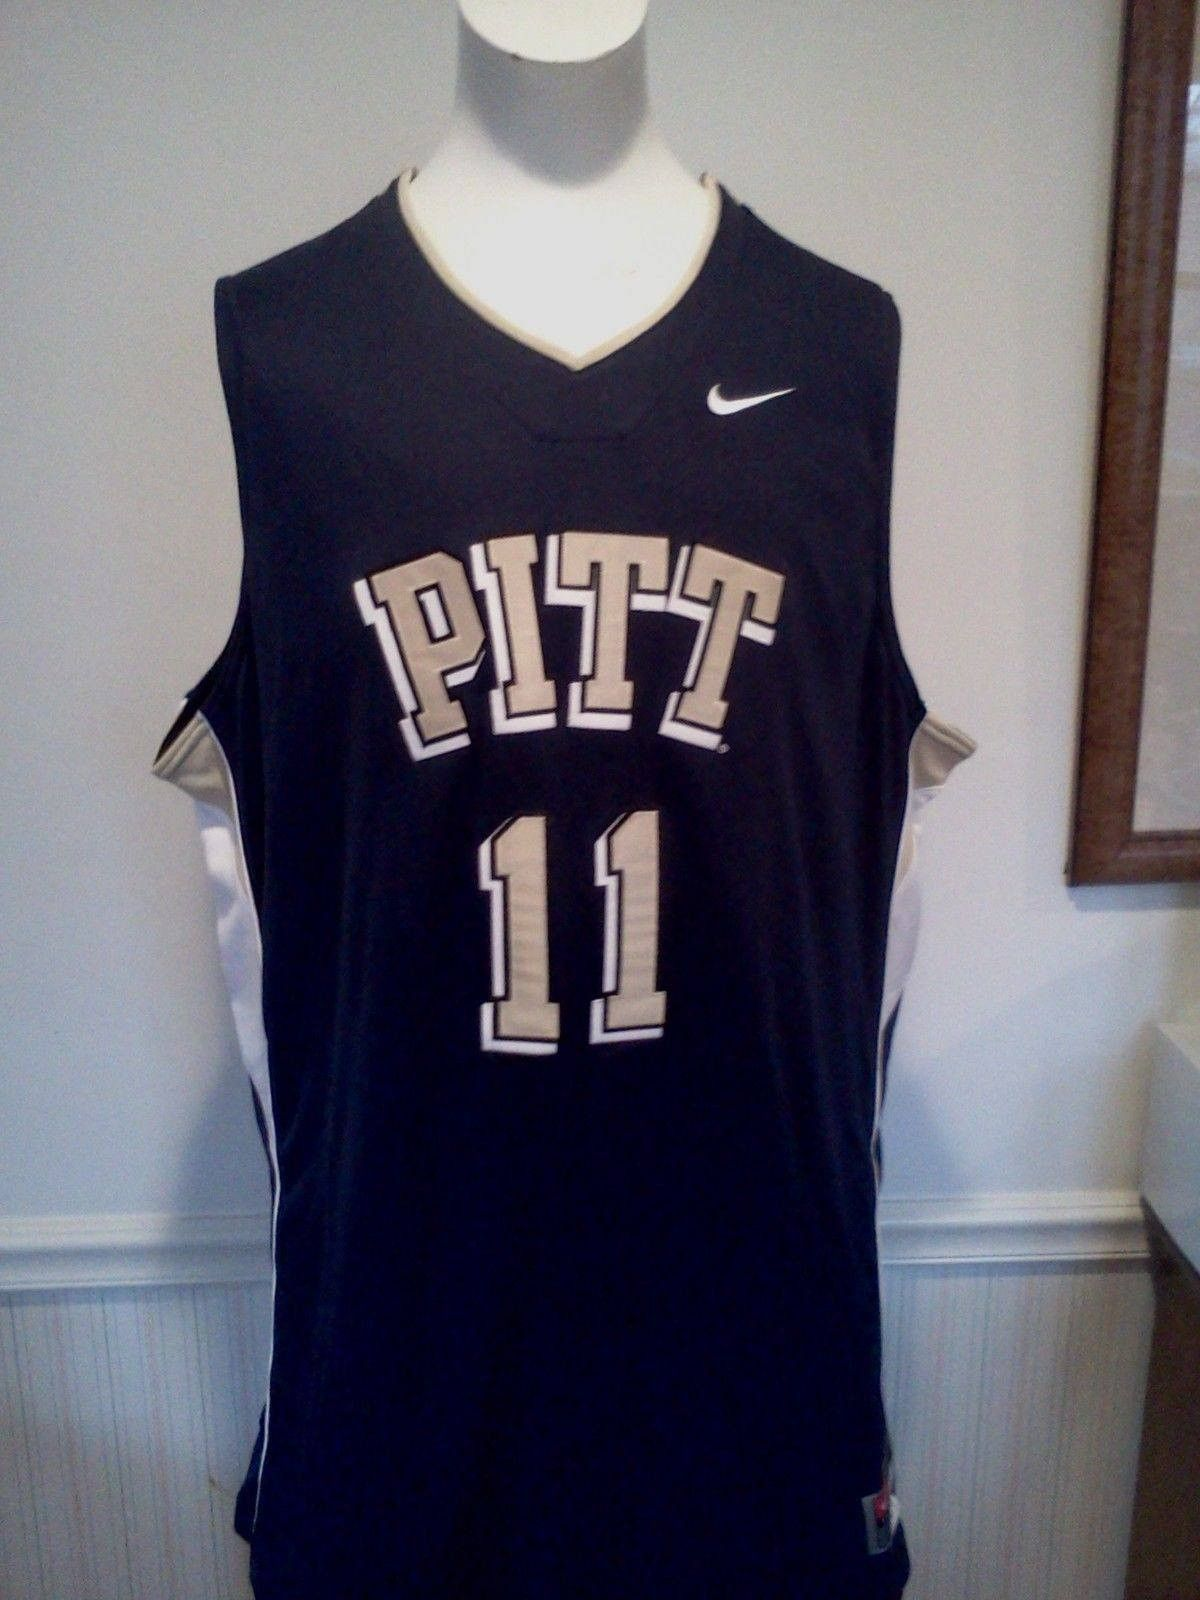 431167ec5cbb Up for sale is a Pitt Panthers Twin Twill Basketball Jersey by Nike. This  Pittsburgh